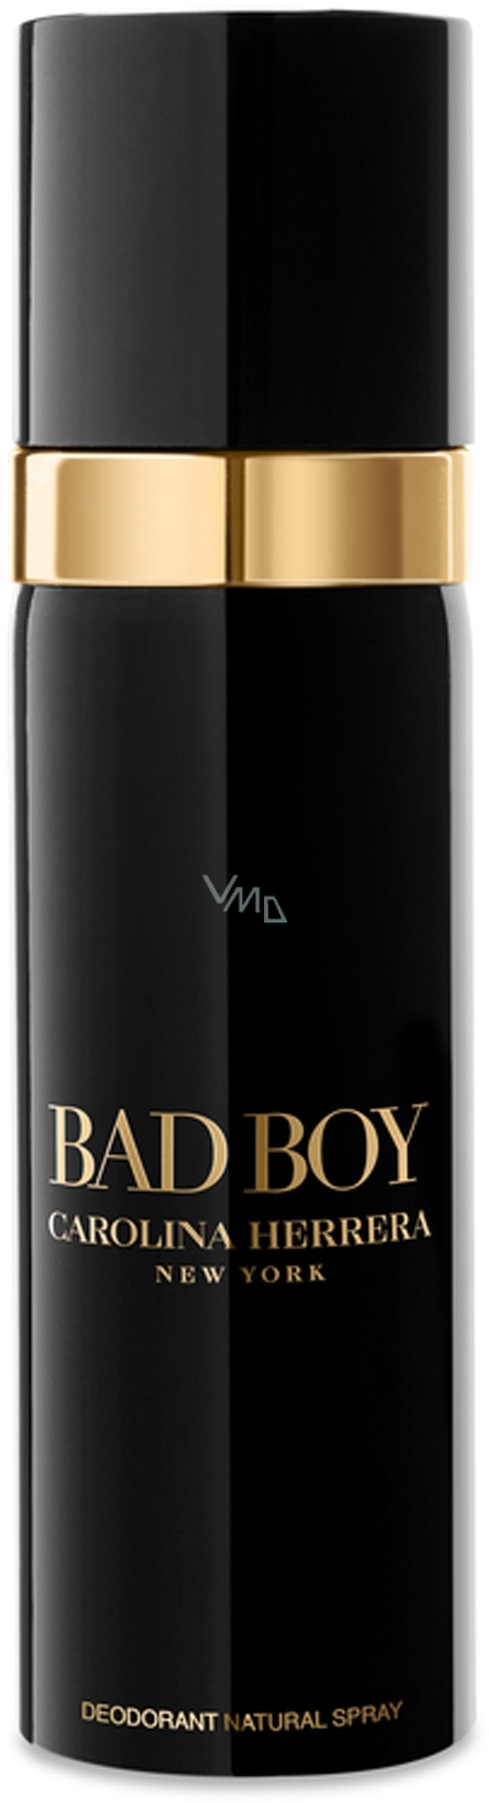 Carolina Herrera Bad Boy (M) żel pod prysznic 200ml